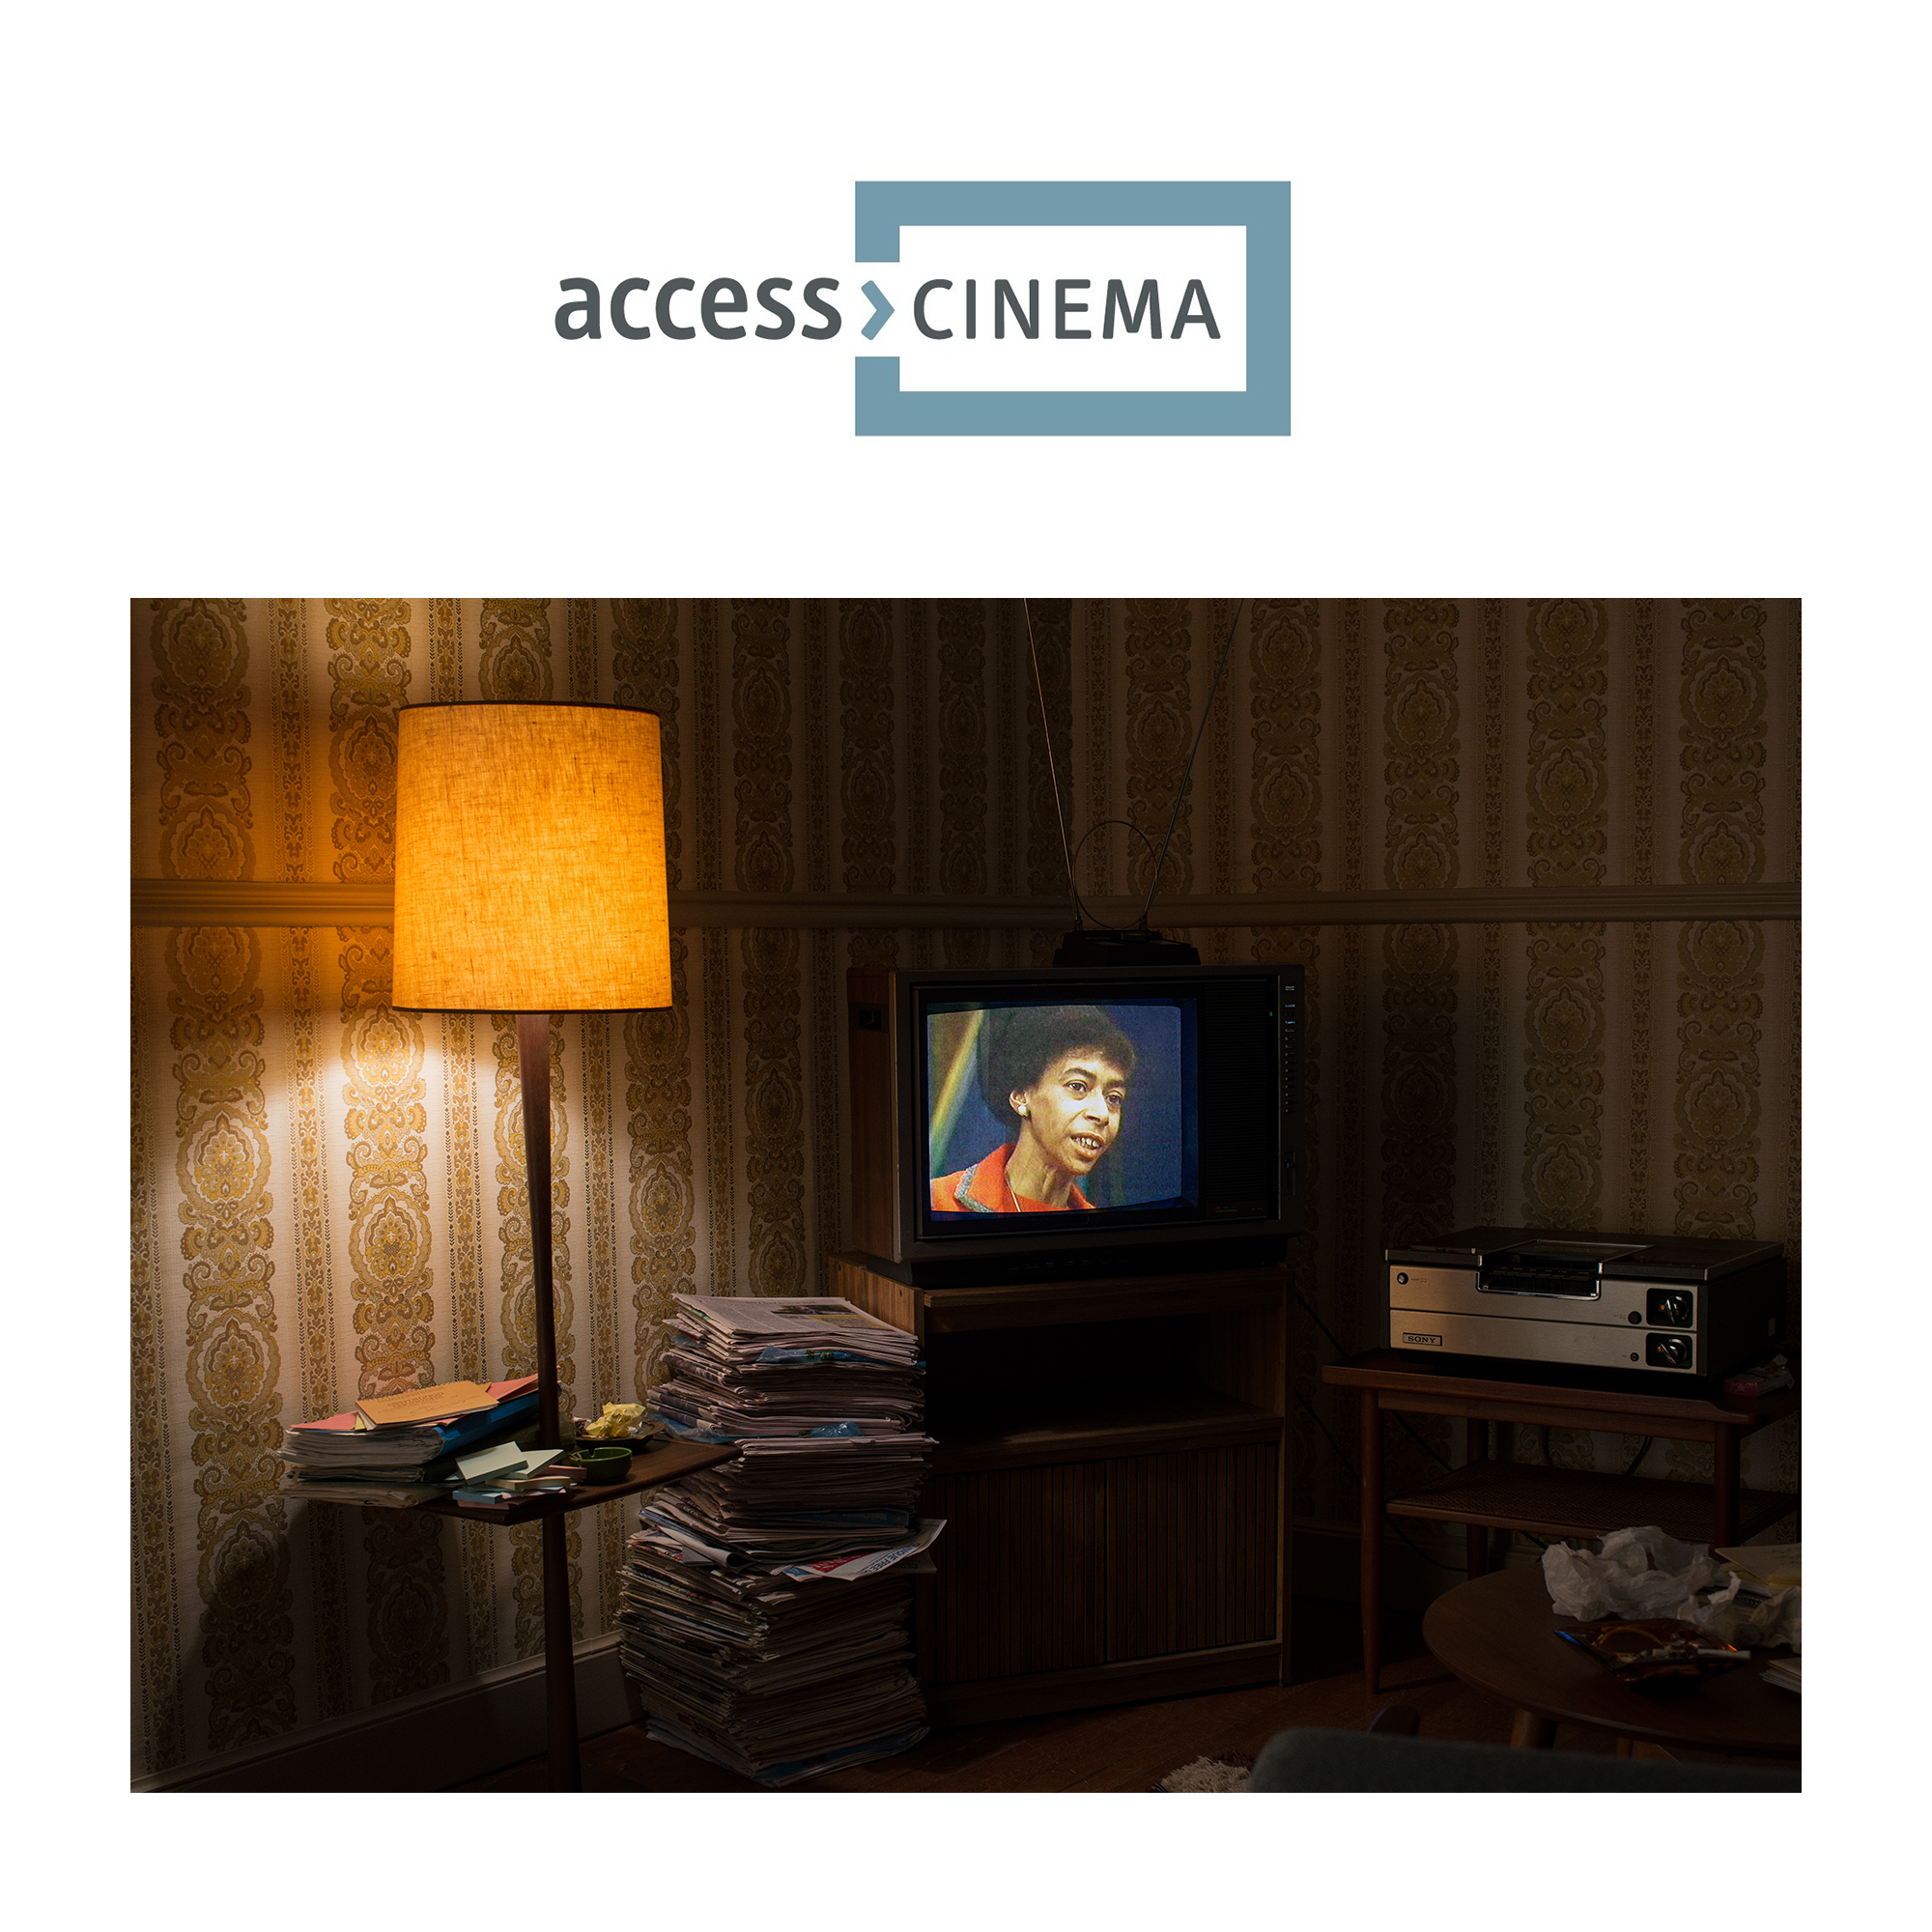 Recorder: The Marion Stokes Project at access>CINEMA